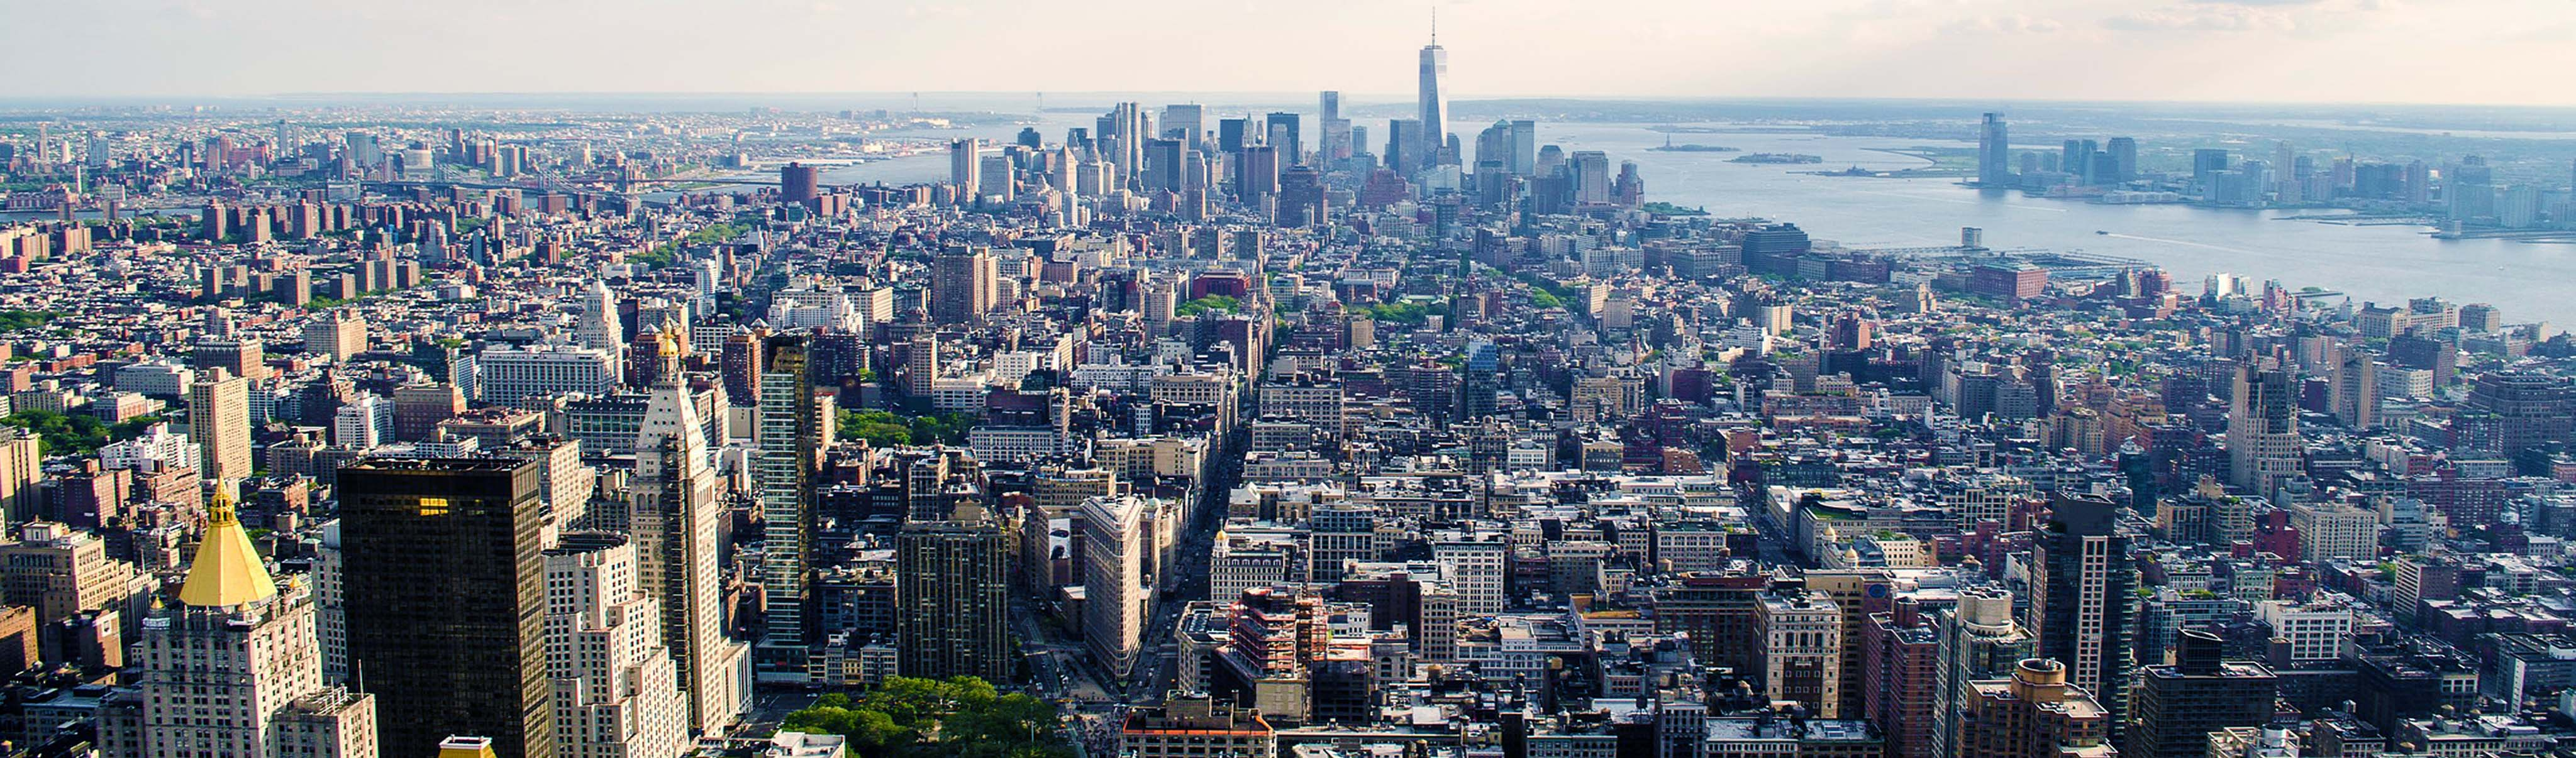 view of NYC from top